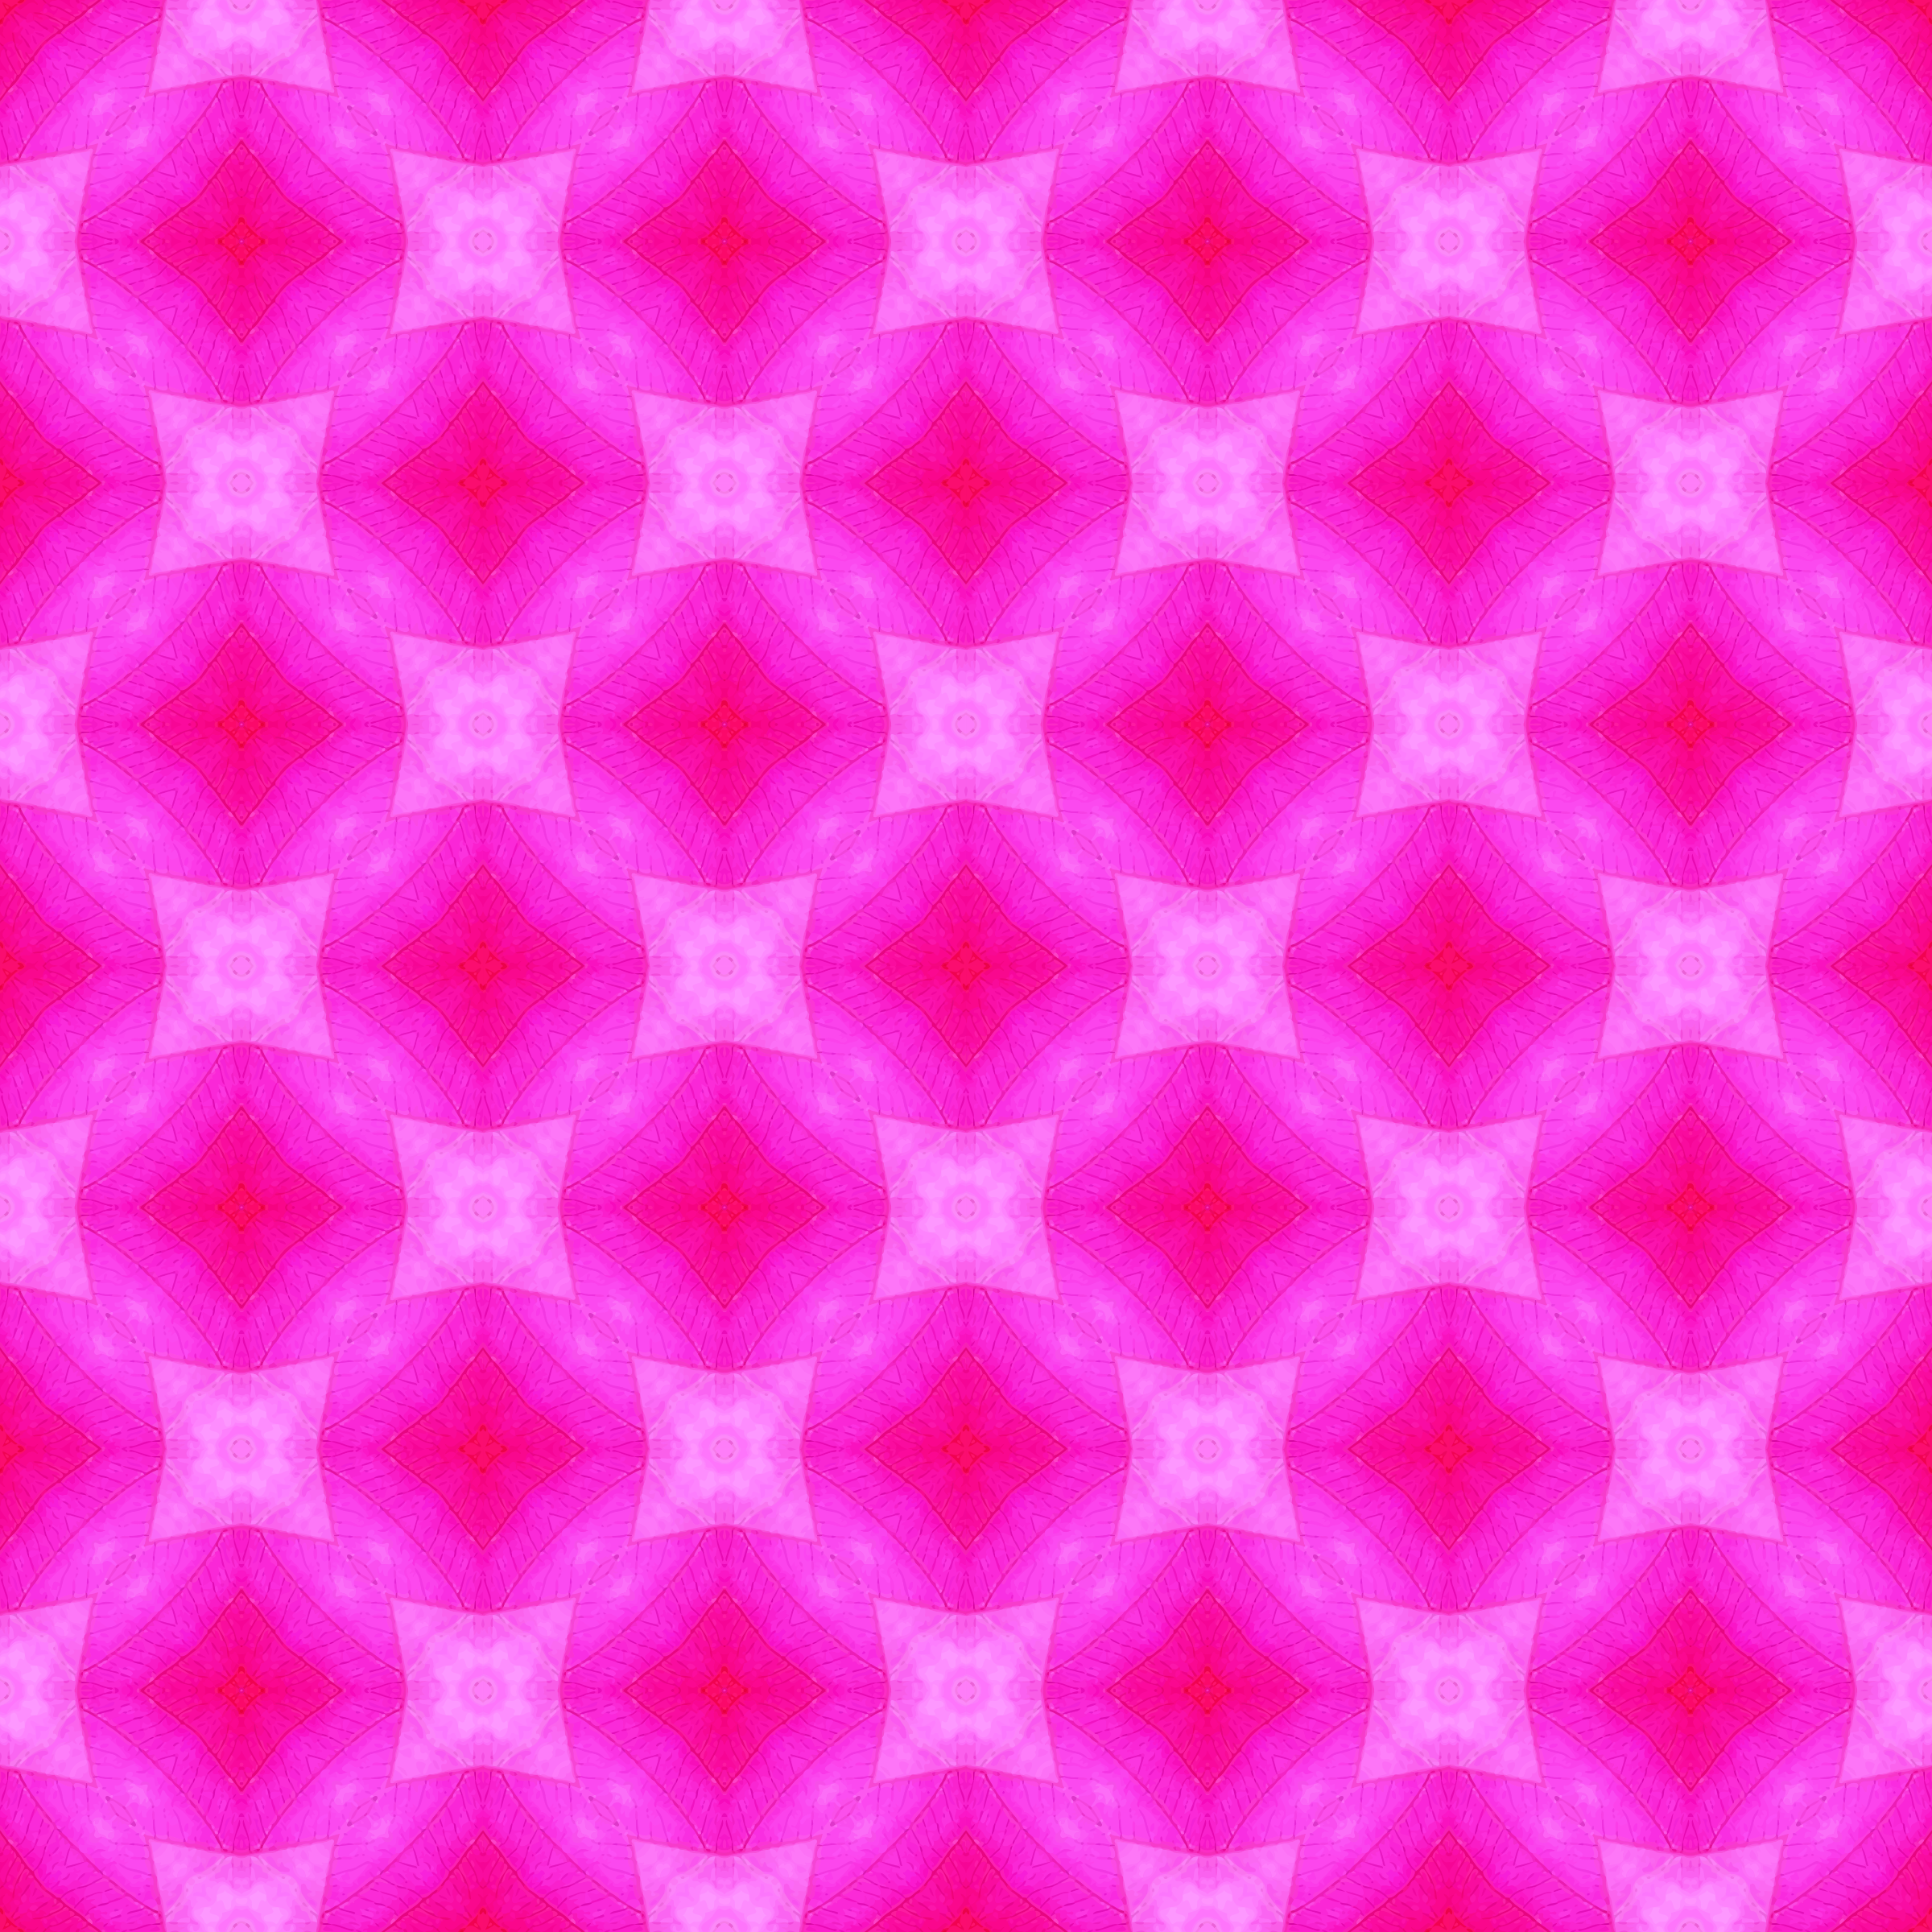 Background pattern 168 (colour 5) by Firkin